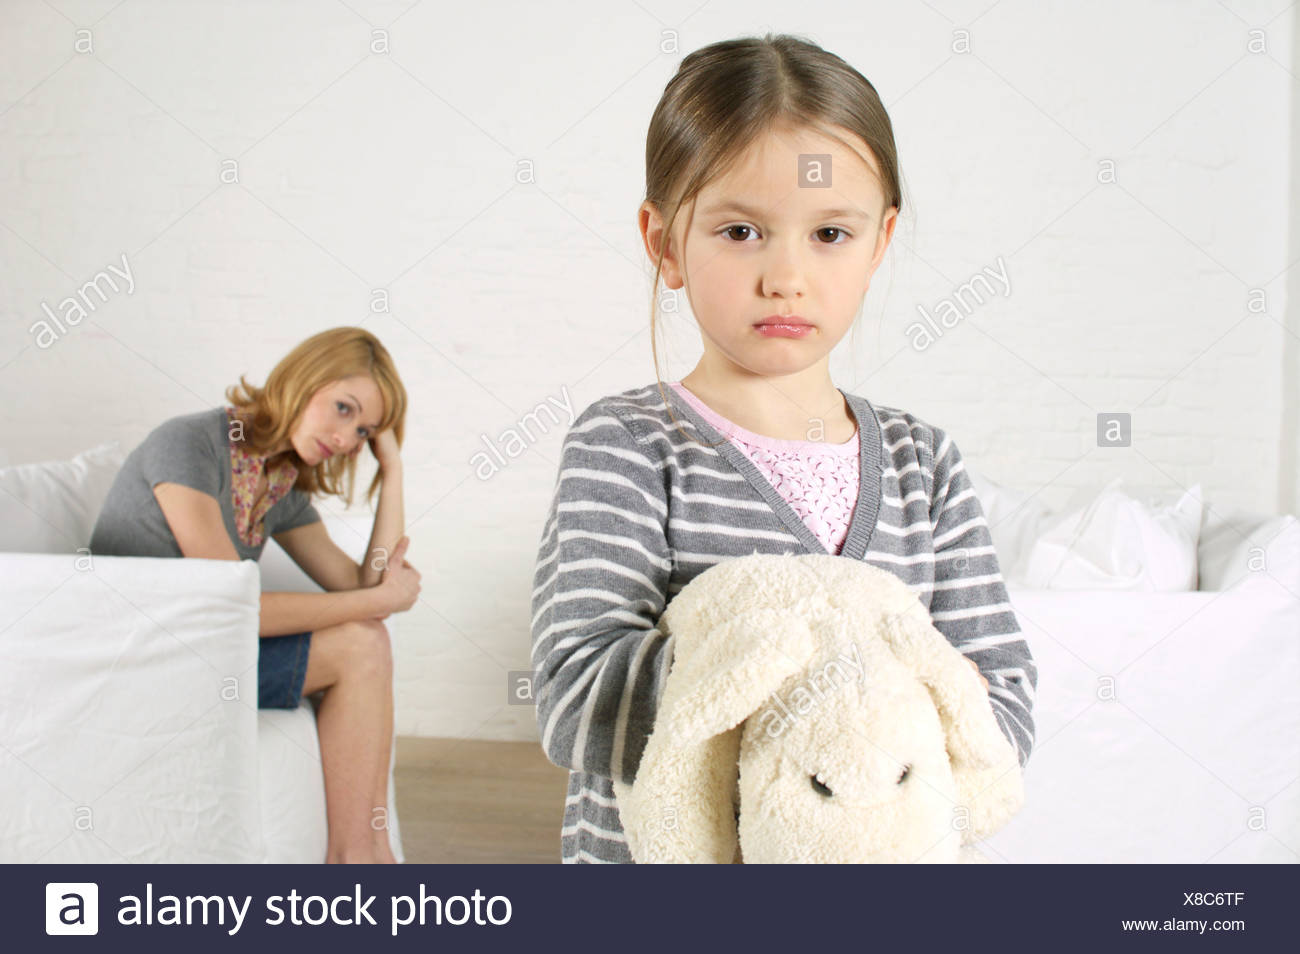 Cheerless girl looking at camera, mother sitting in background - Stock Image